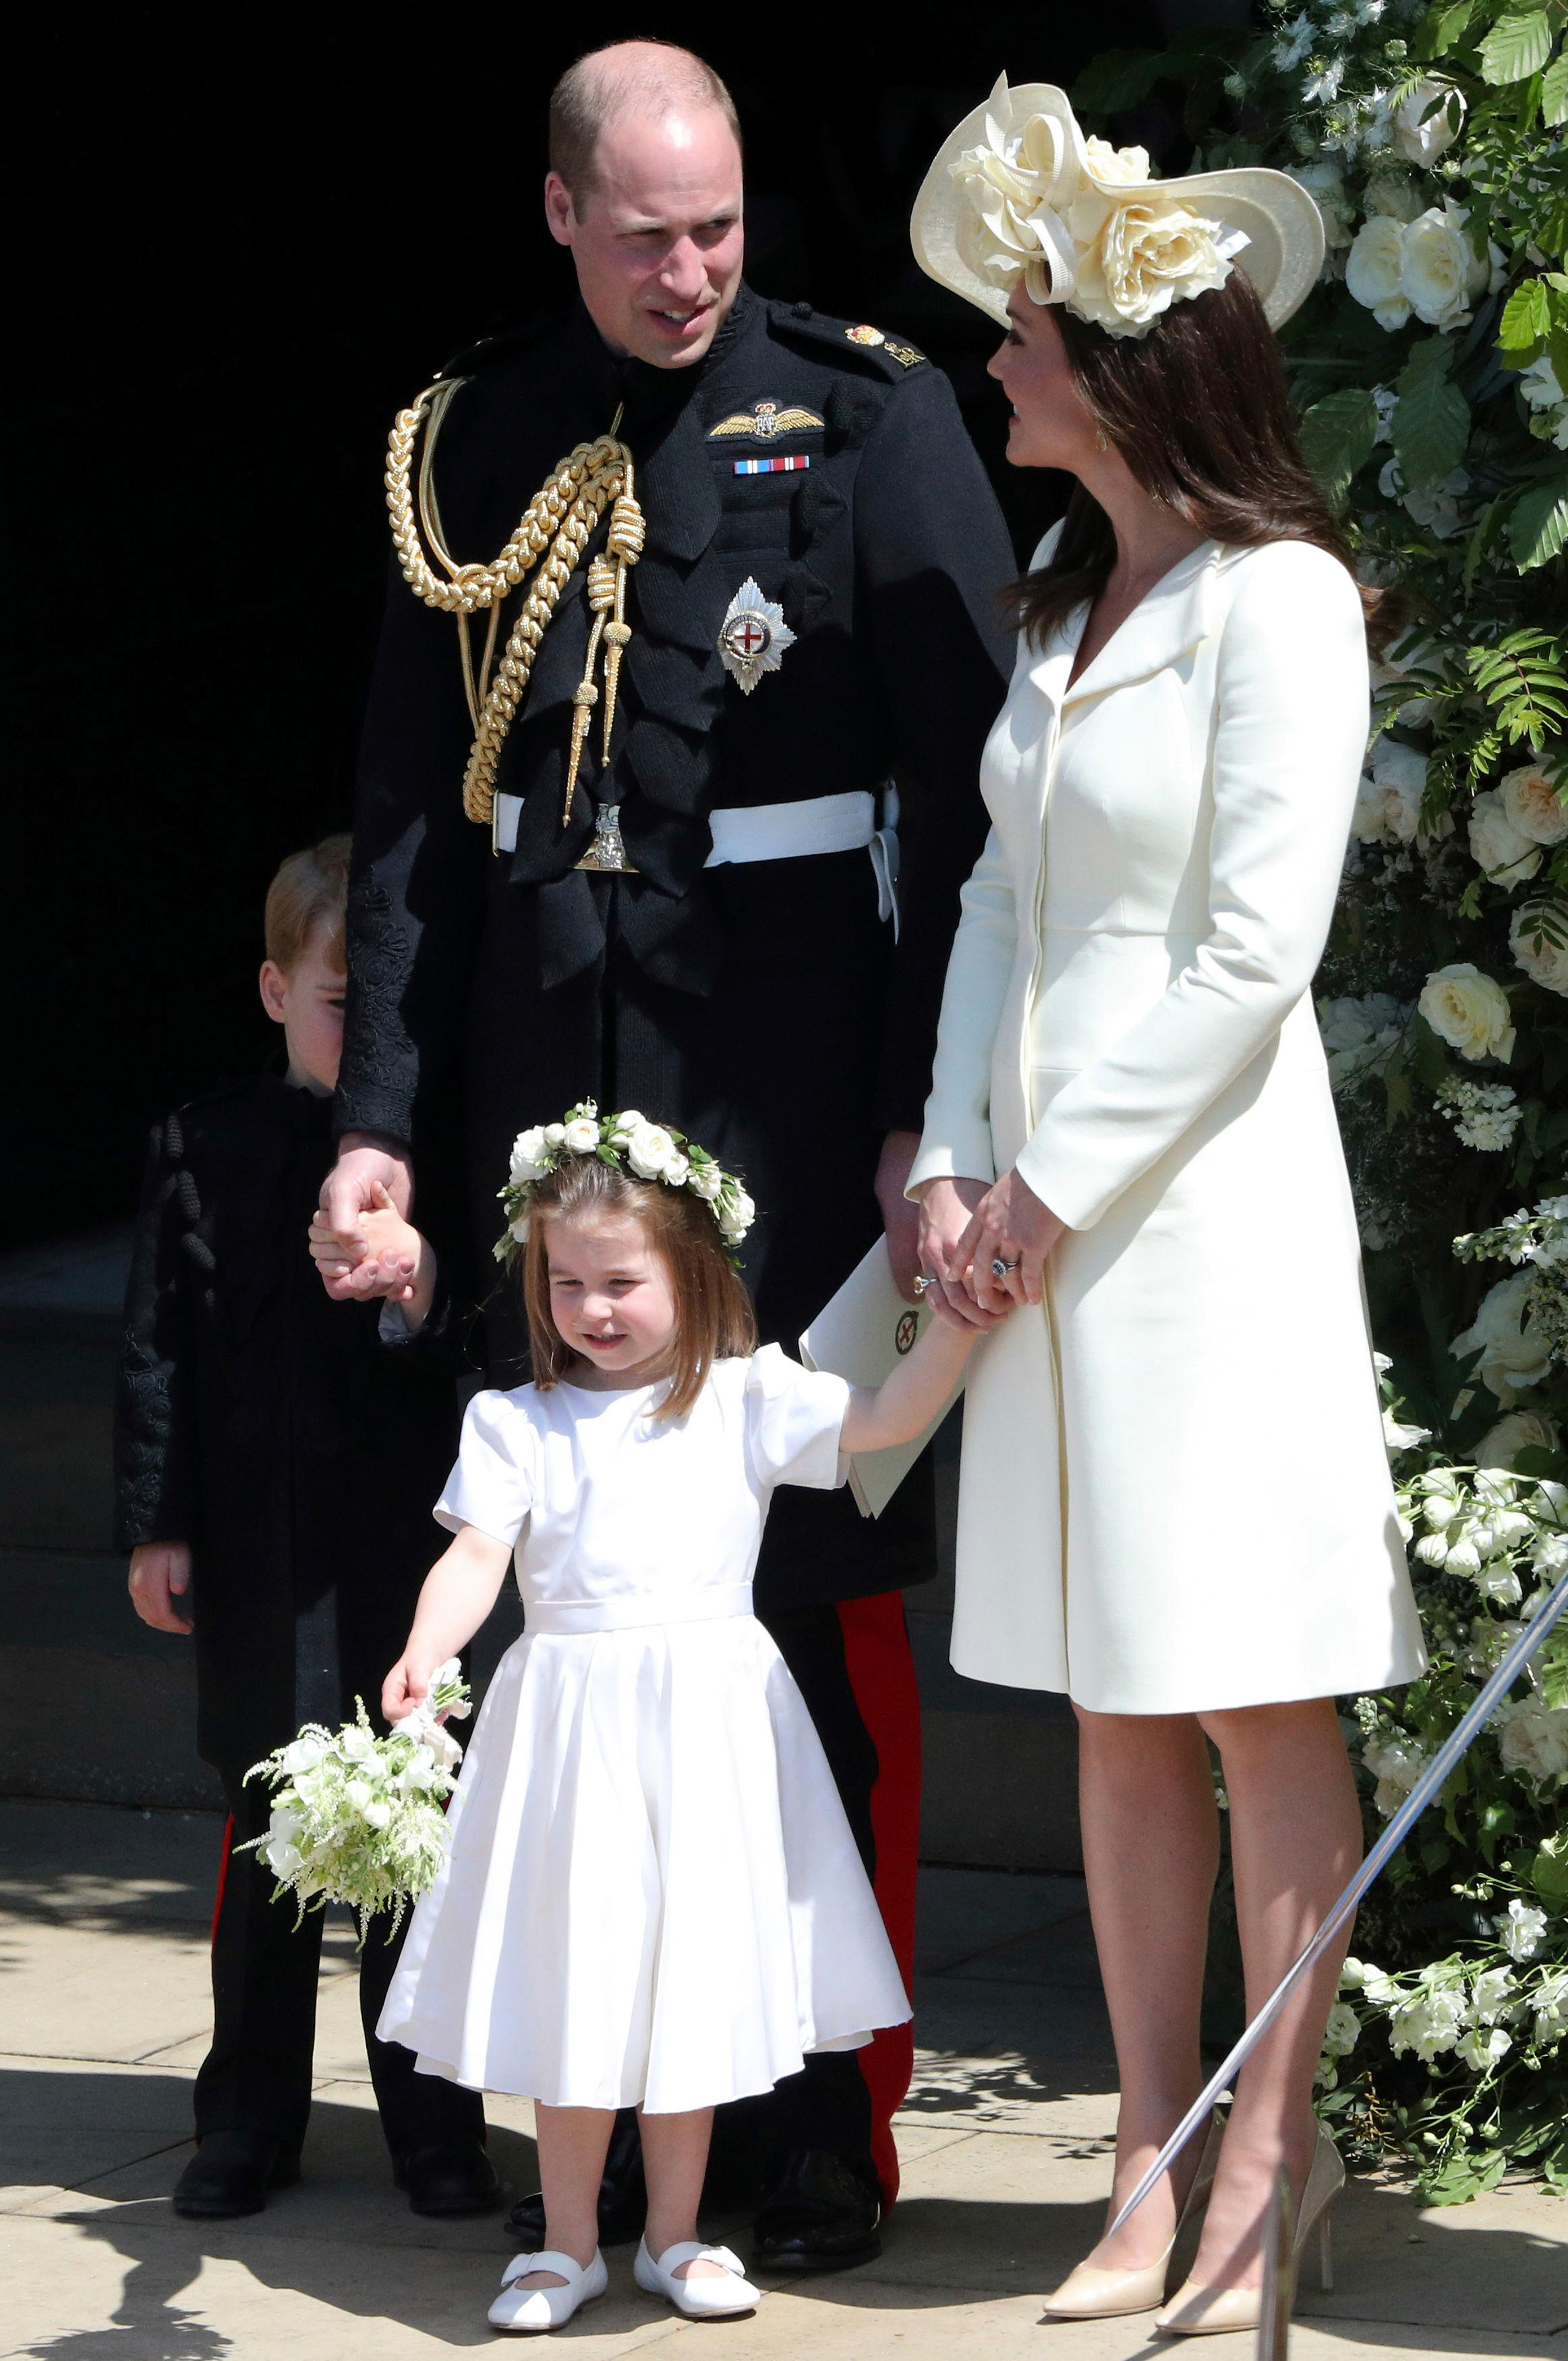 Britain's Prince William and Kate, Duchess of Cambridge with Prince George and Princess Charlotte leave St George's Chapel in Windsor Castle after the wedding of Prince Harry and Meghan Markle at St. George's Chapel in Windsor Castle in Windsor, near London, England, Saturday, May 19, 2018. (Andrew Matthews/pool photo via AP)